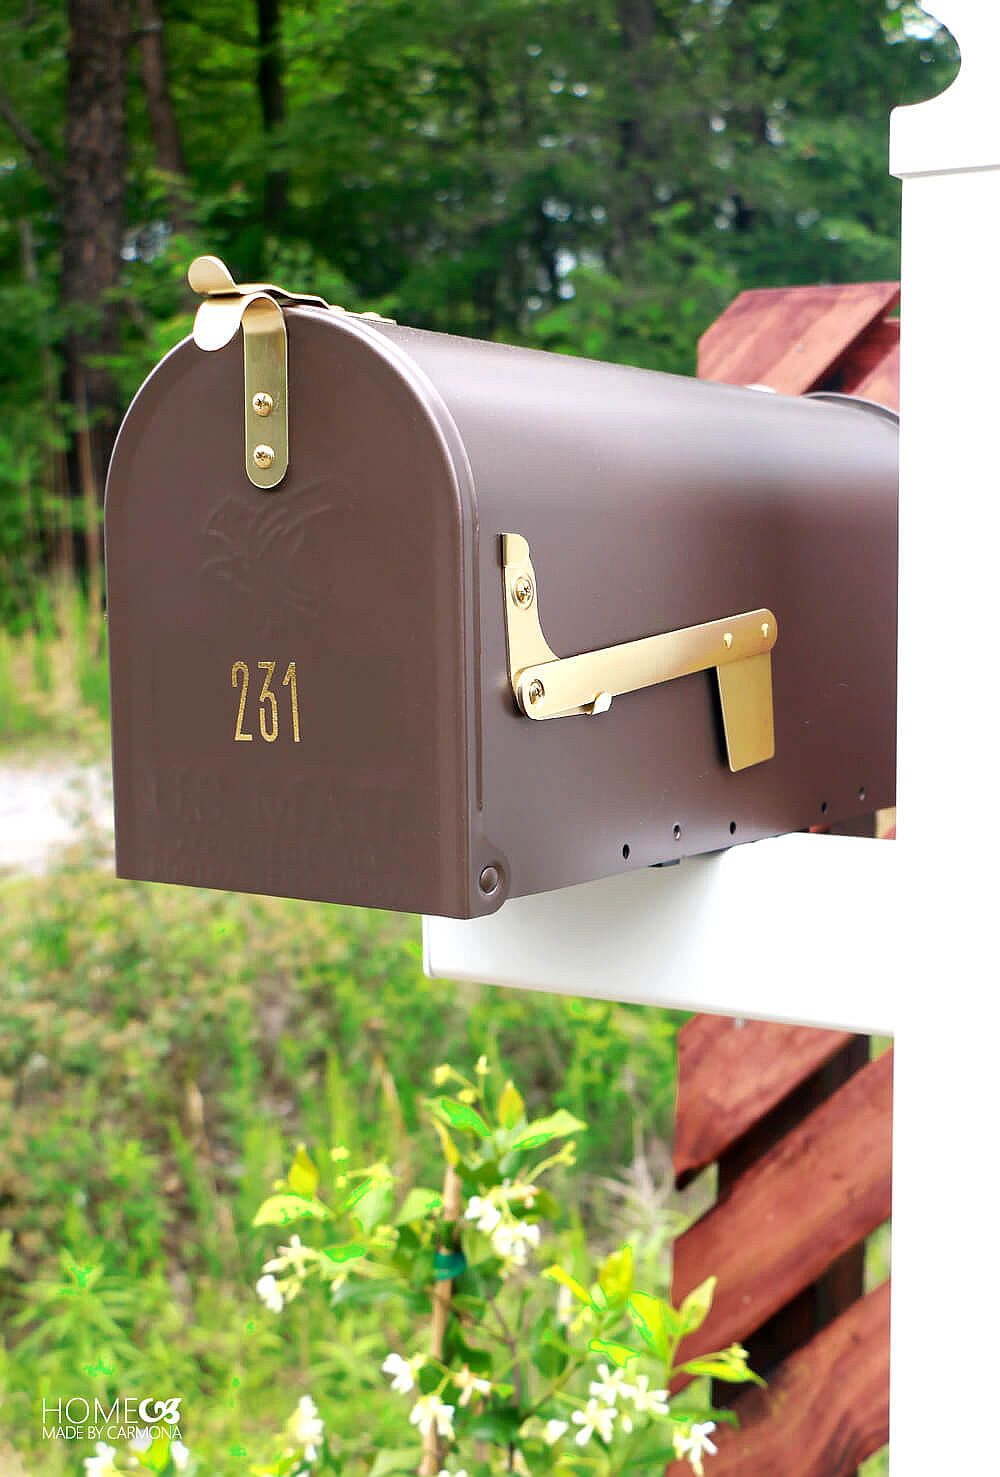 Personal stylized DIY mailbox idea